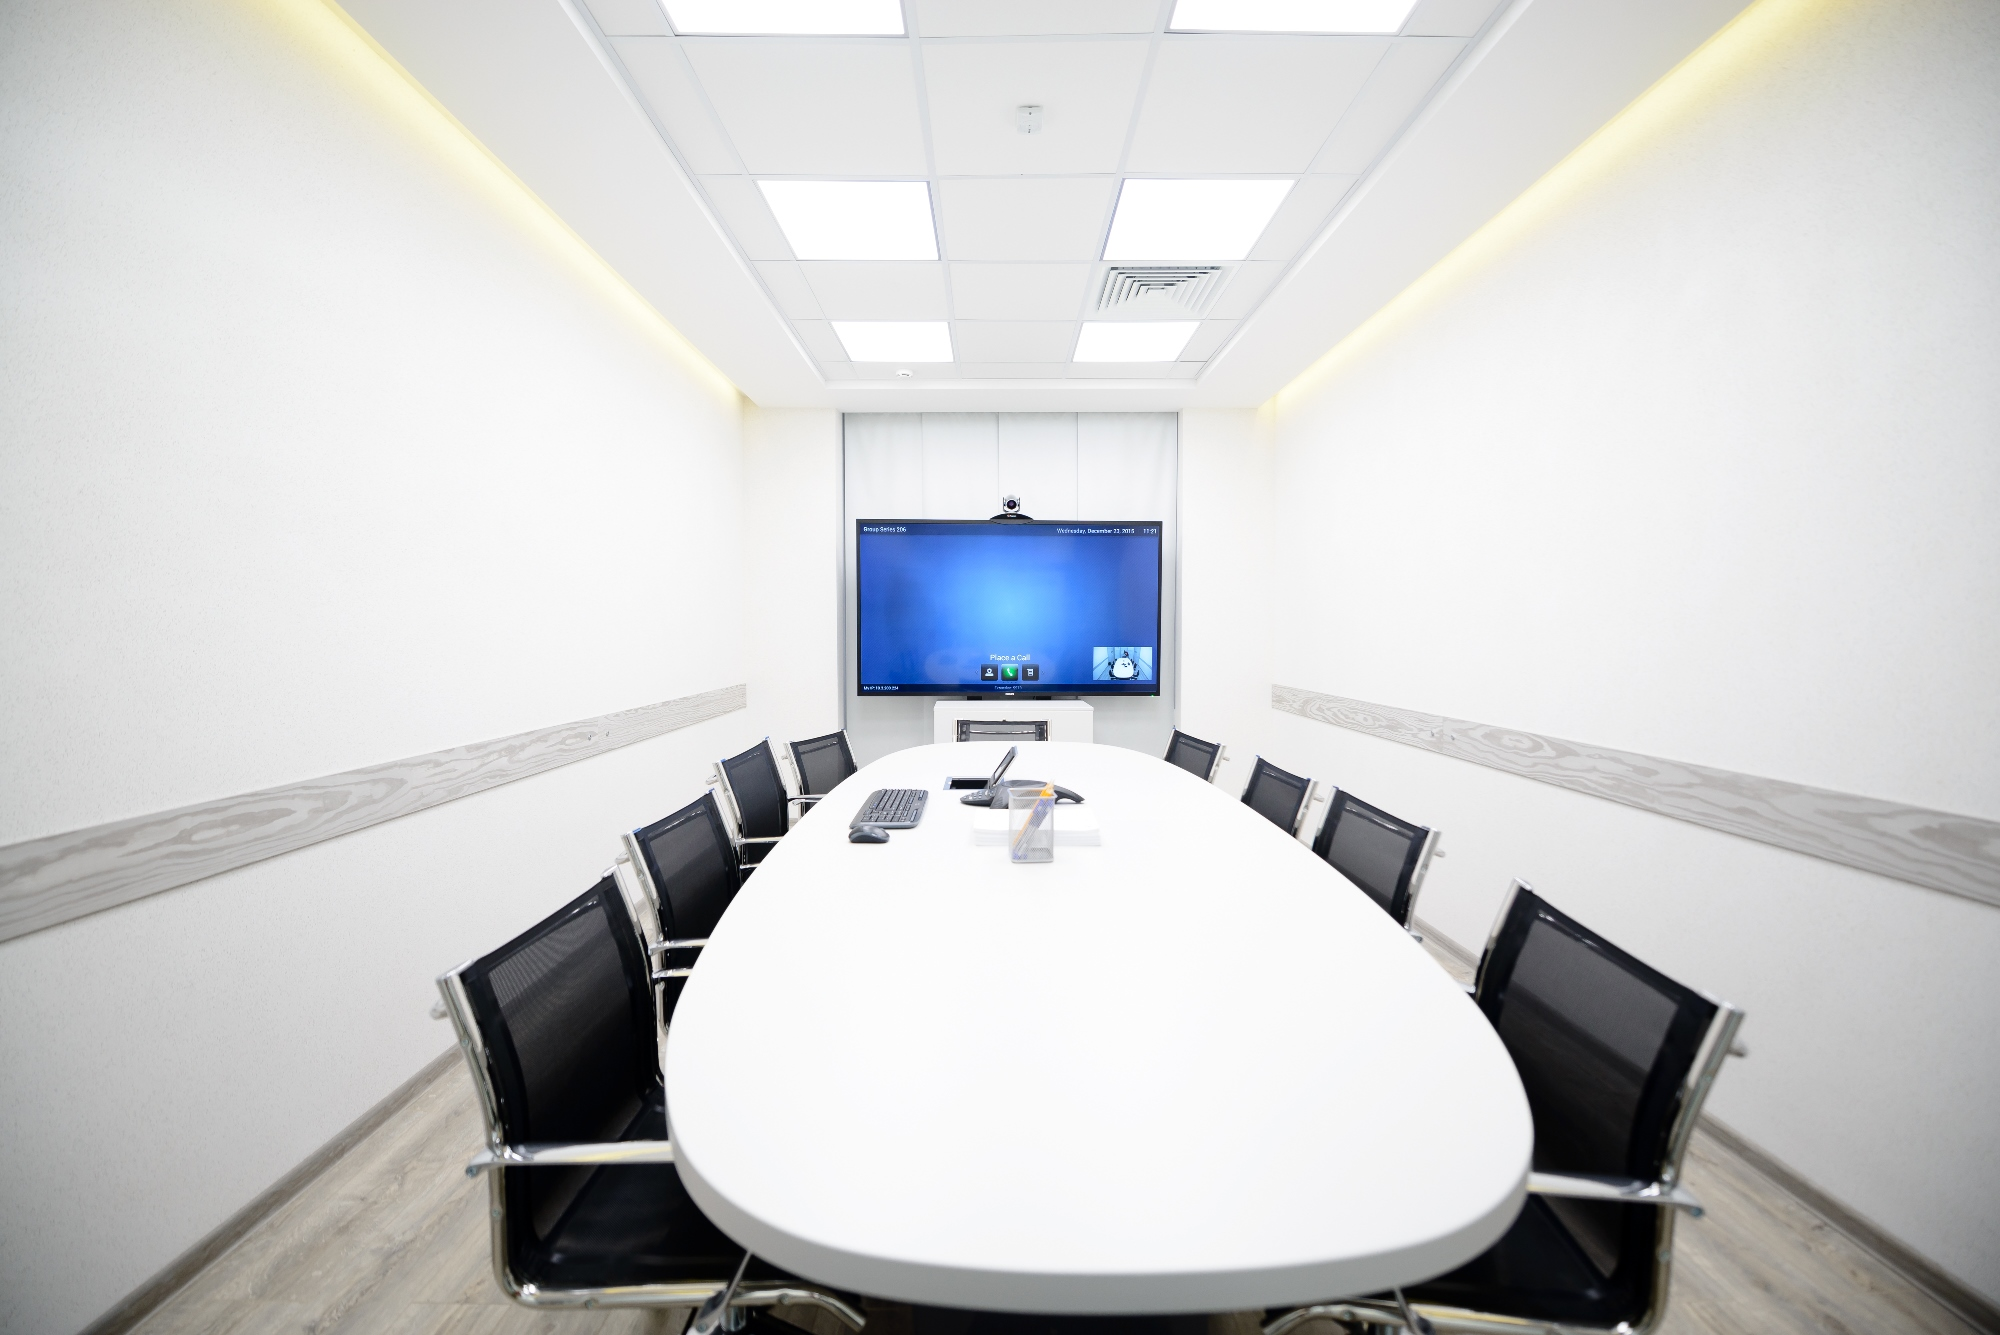 Rooms include an Extron Cable Cubby enclosure paired with a Retractor Series/2 cable access system to provide AV and LAN connectivity, as well as AC power, at the table.